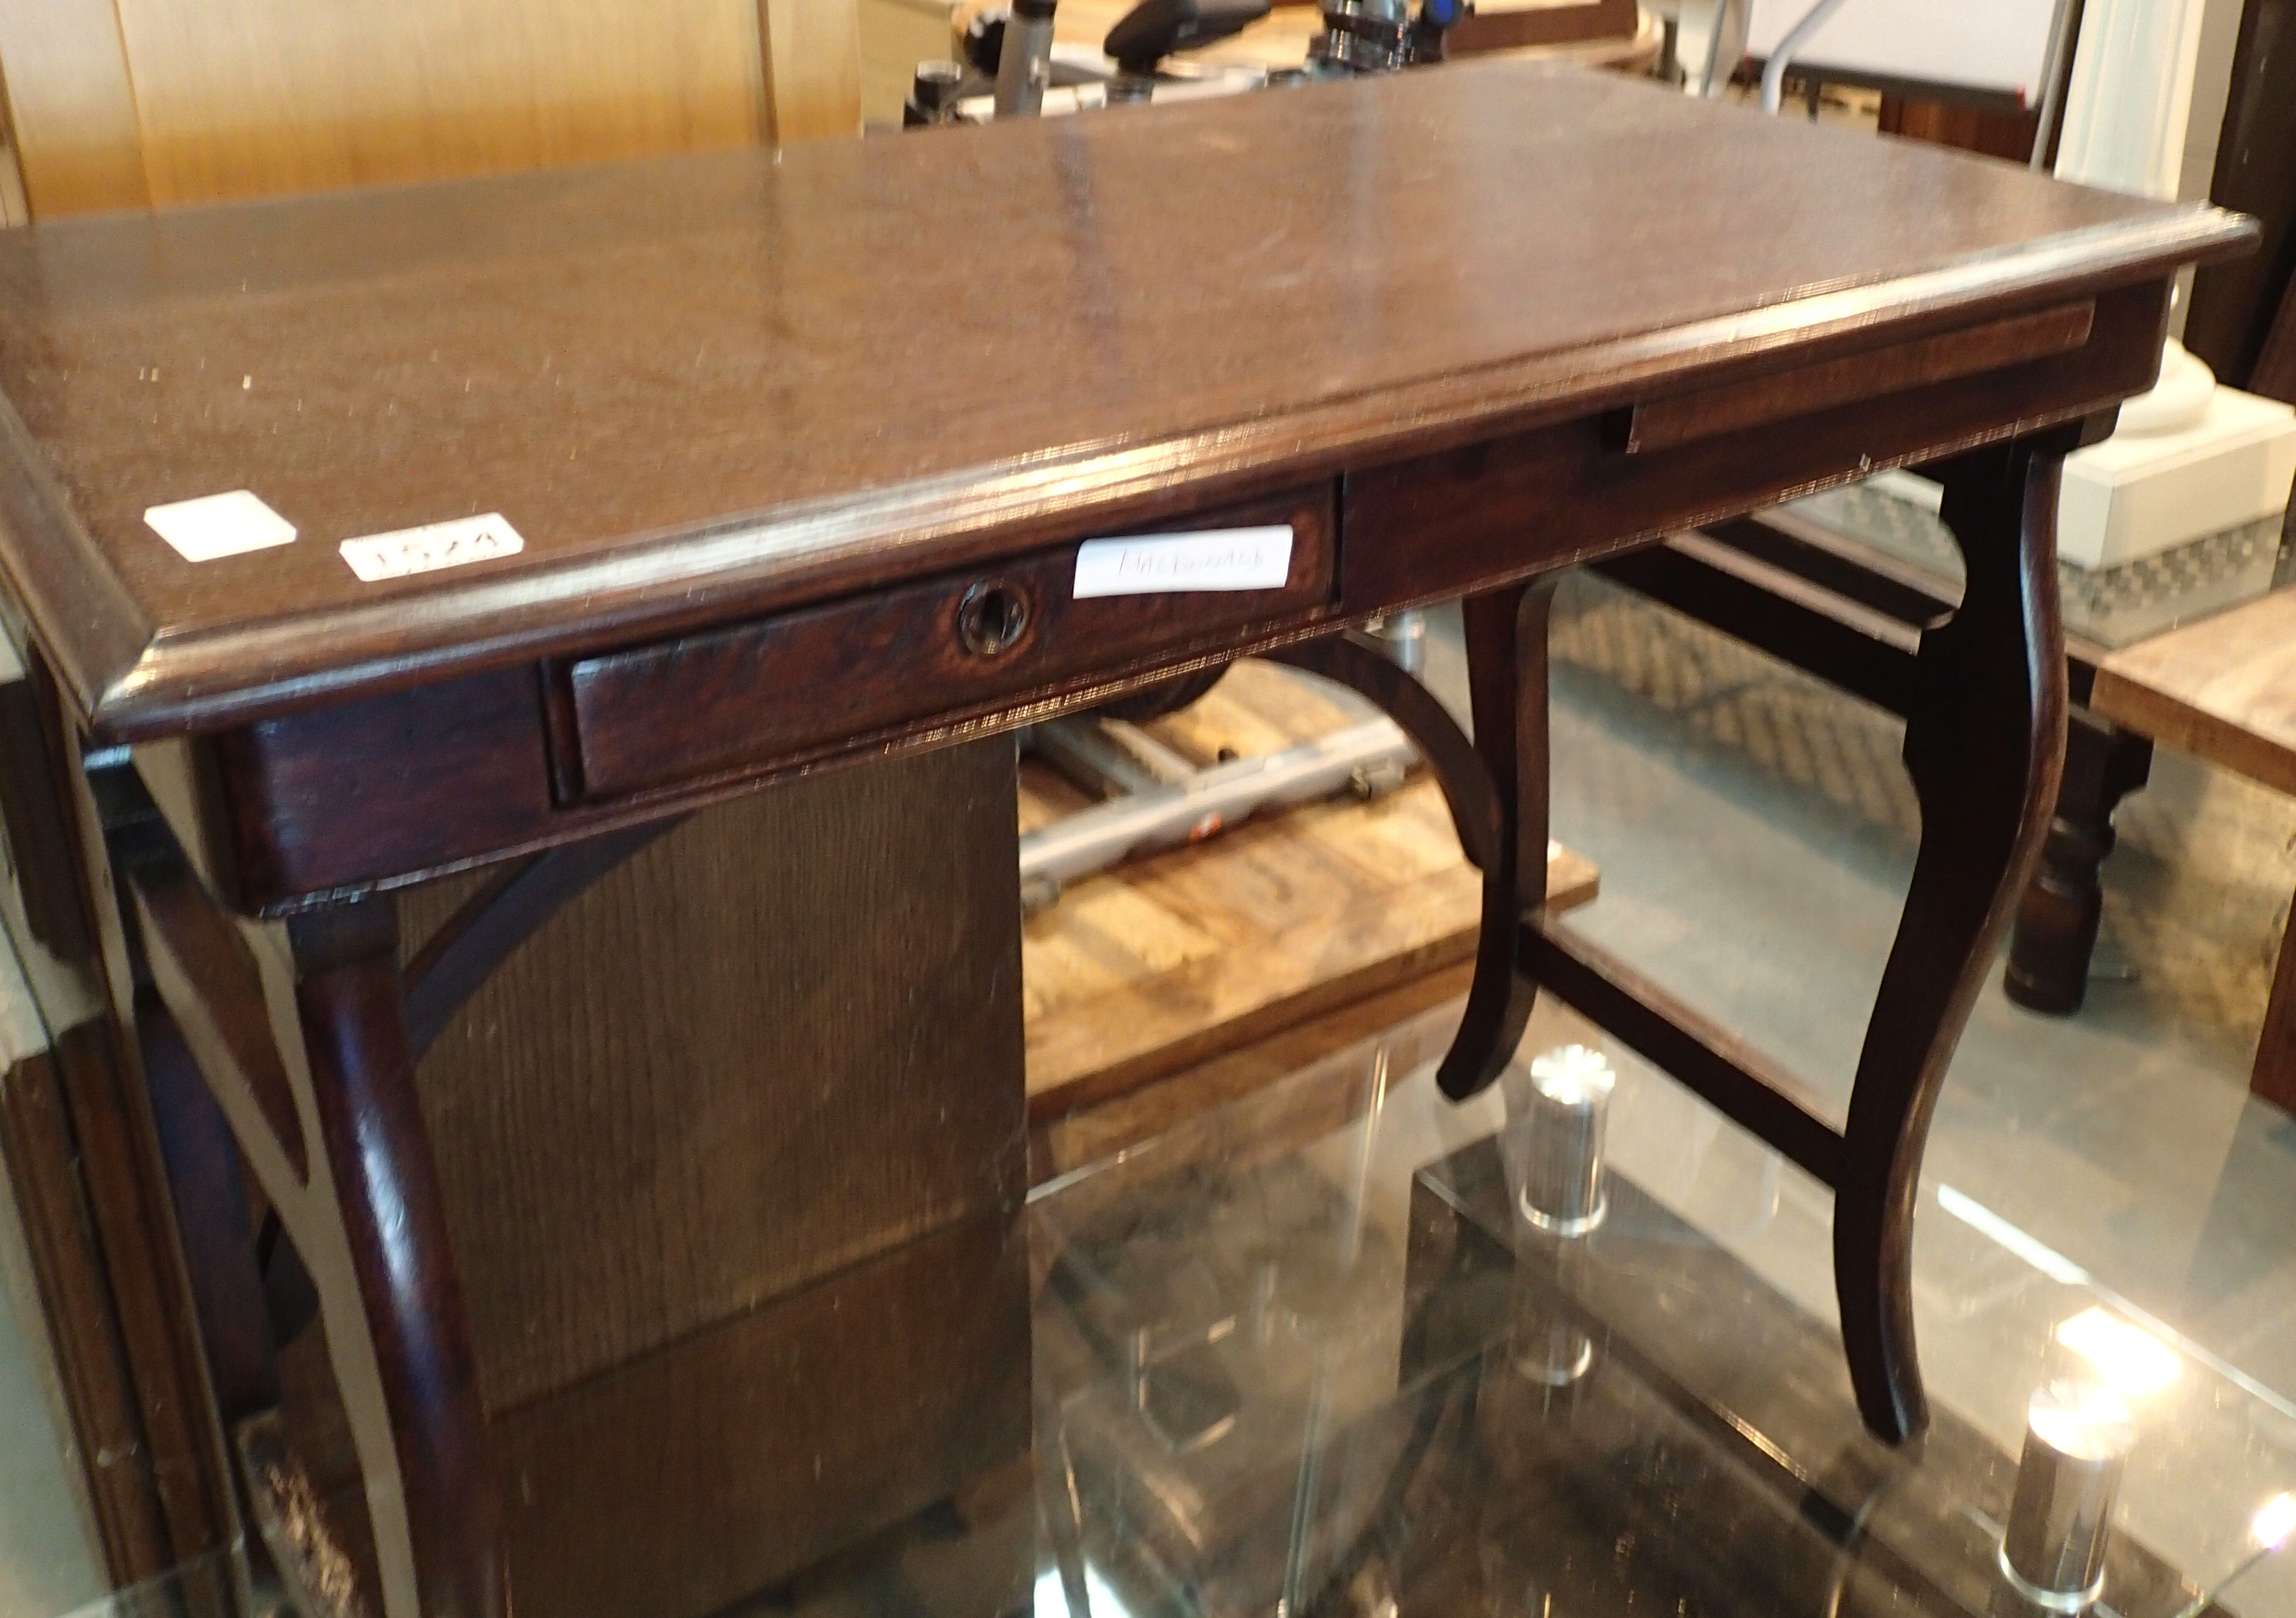 Good quality single drawer and sliding rest mahogany table and a glass TV stand. Not available for